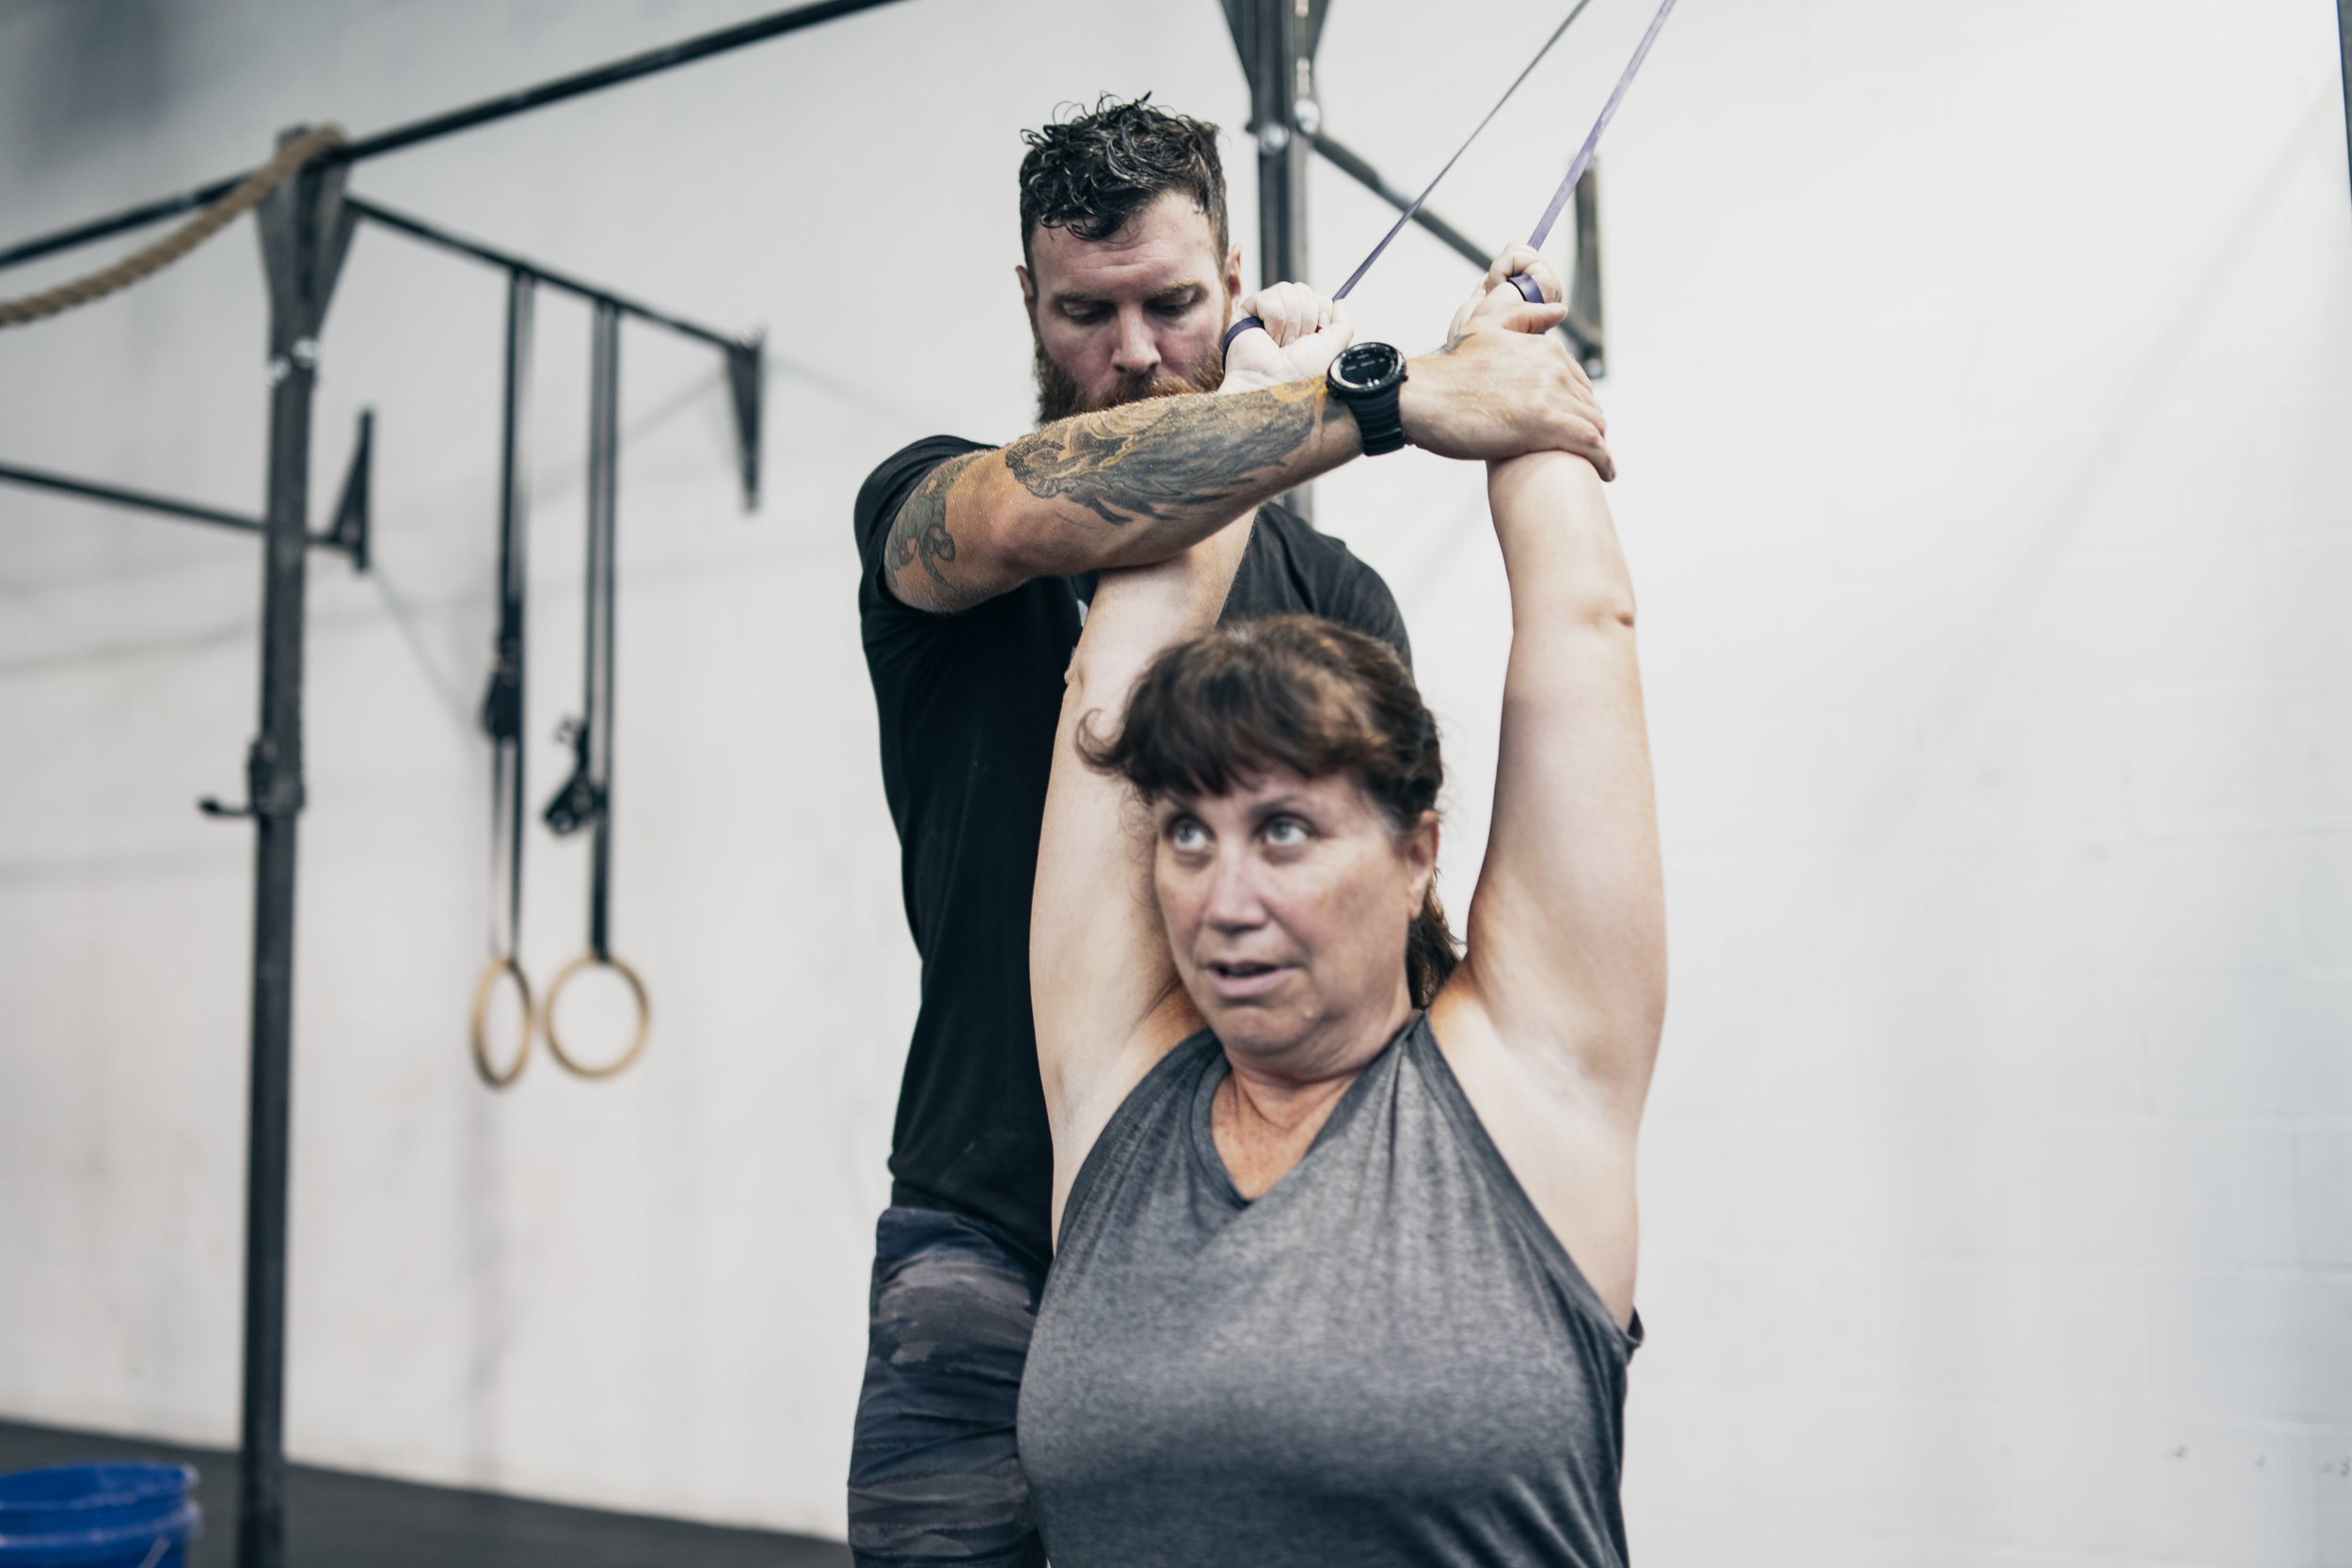 PERSONAL TRAINING - One-on-one sessions customized for you and your goals.